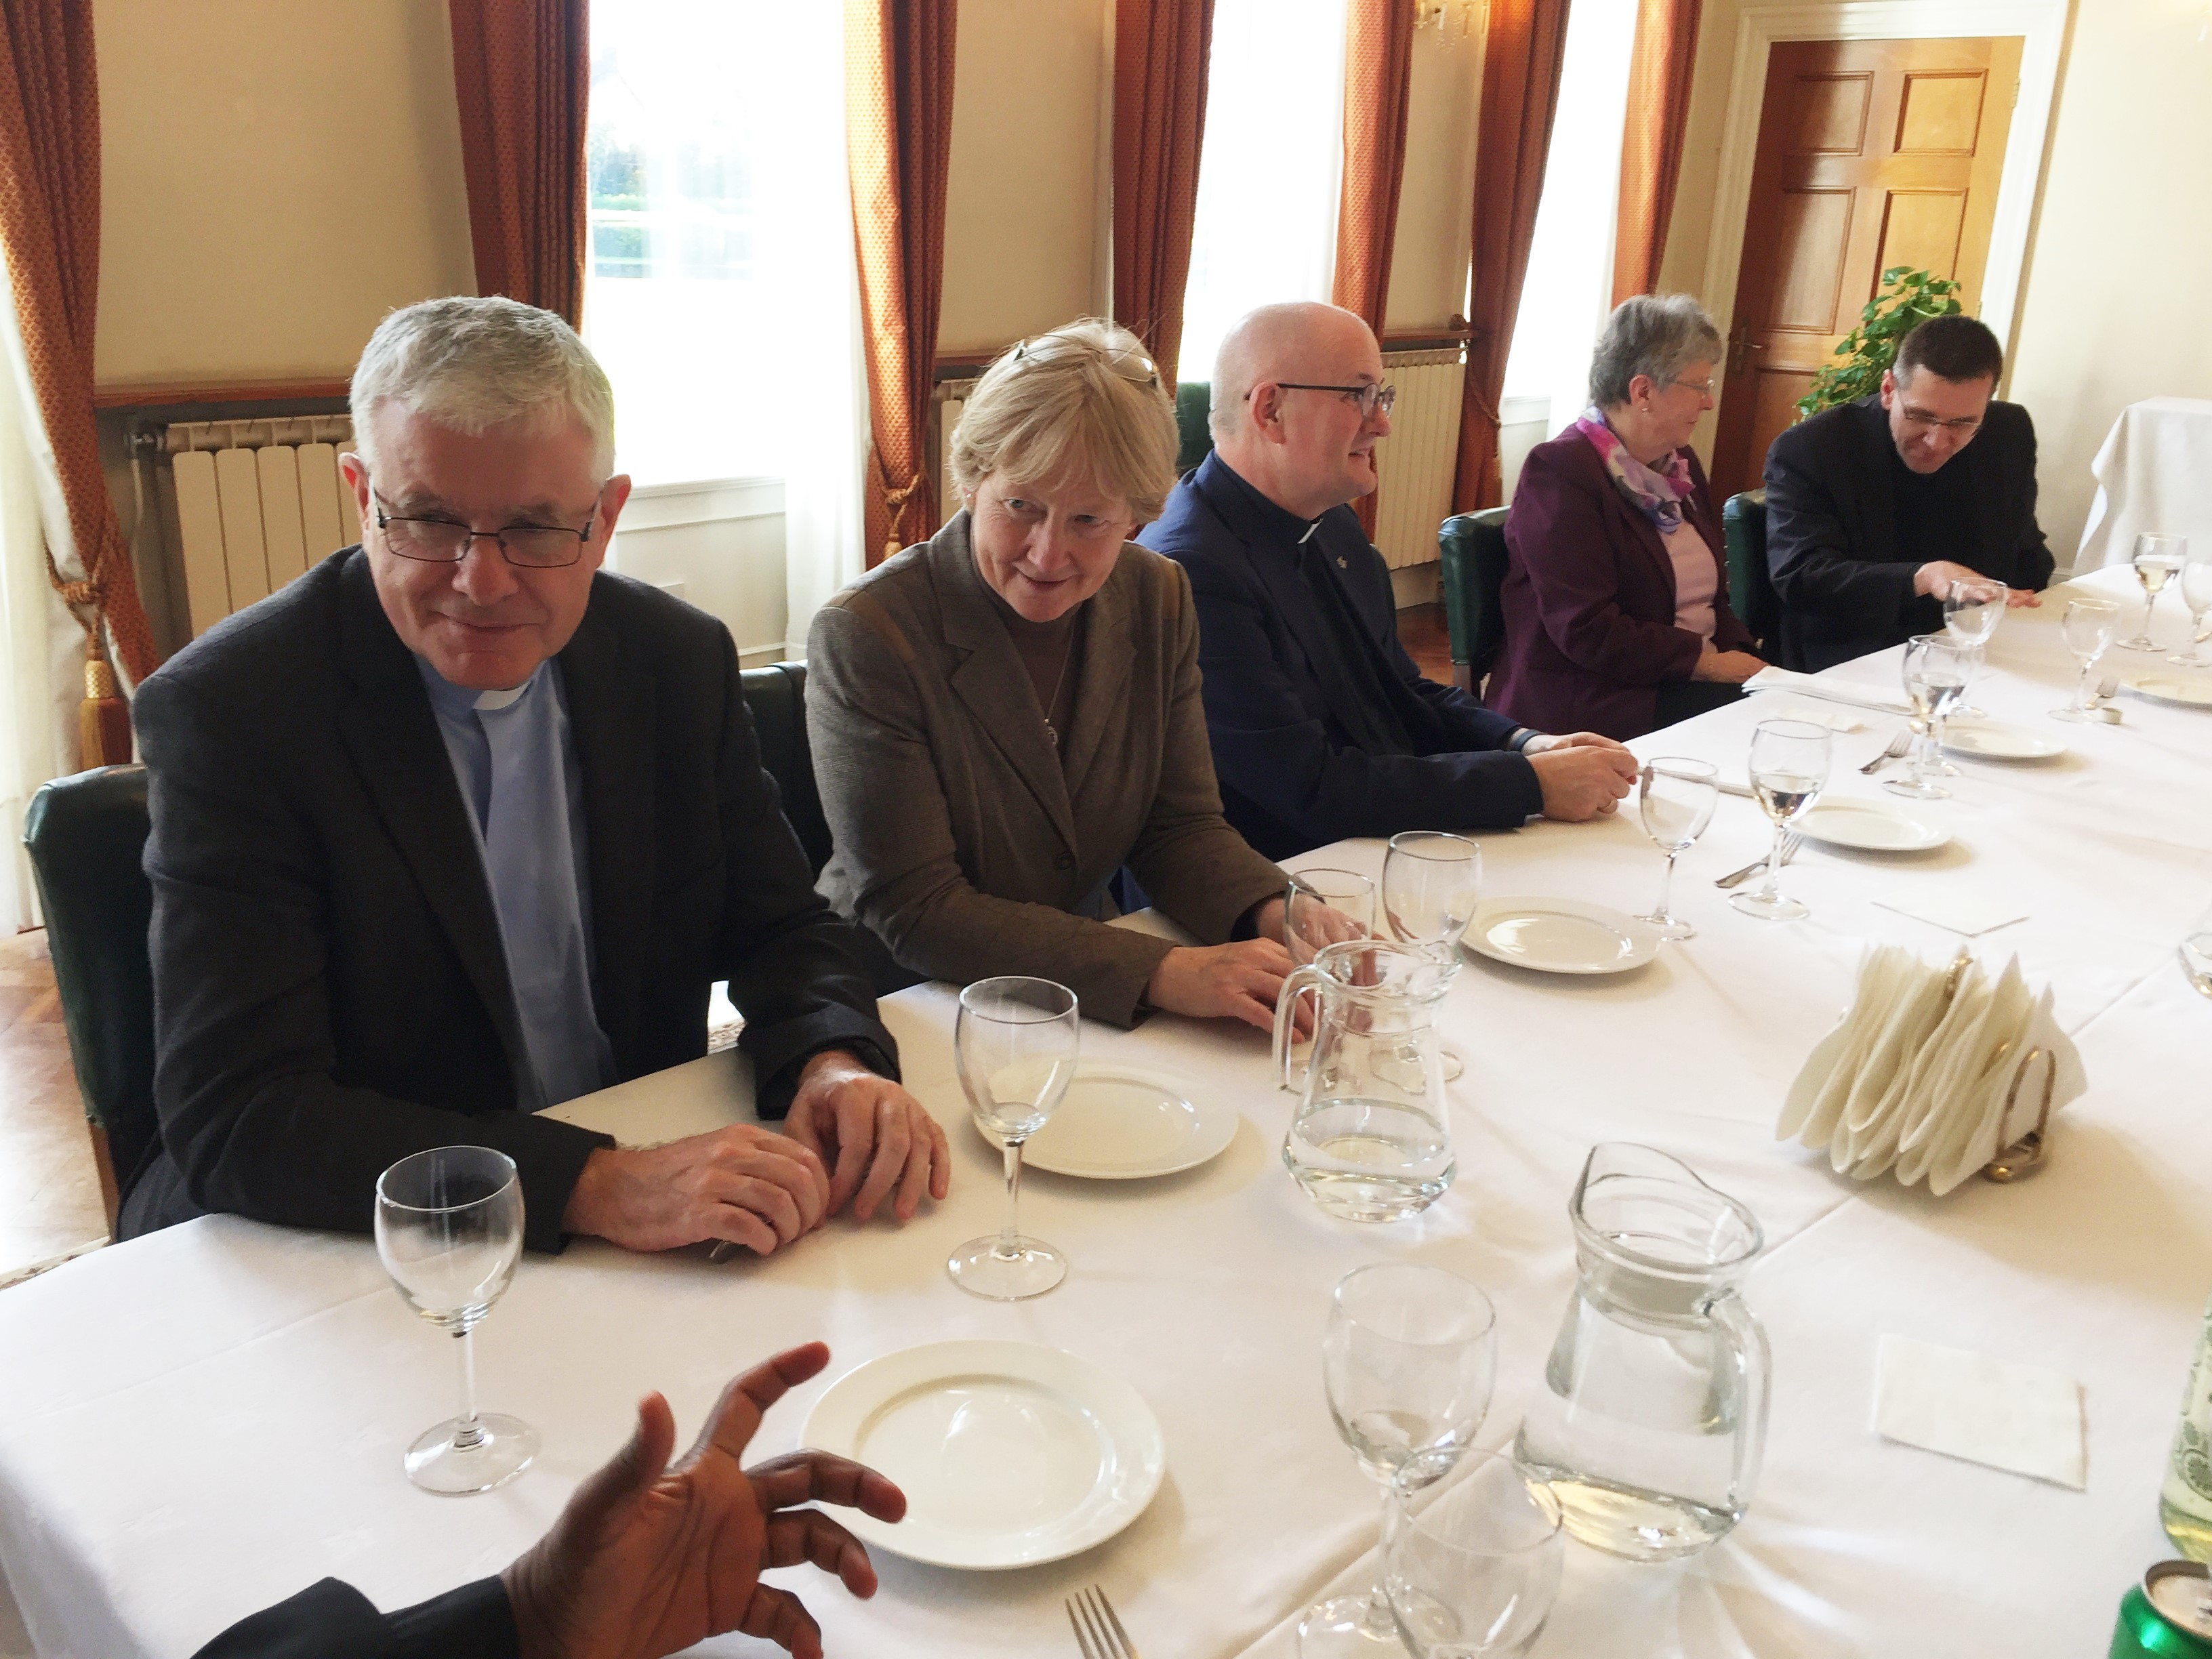 Lunch with the Apostolic Nuncio